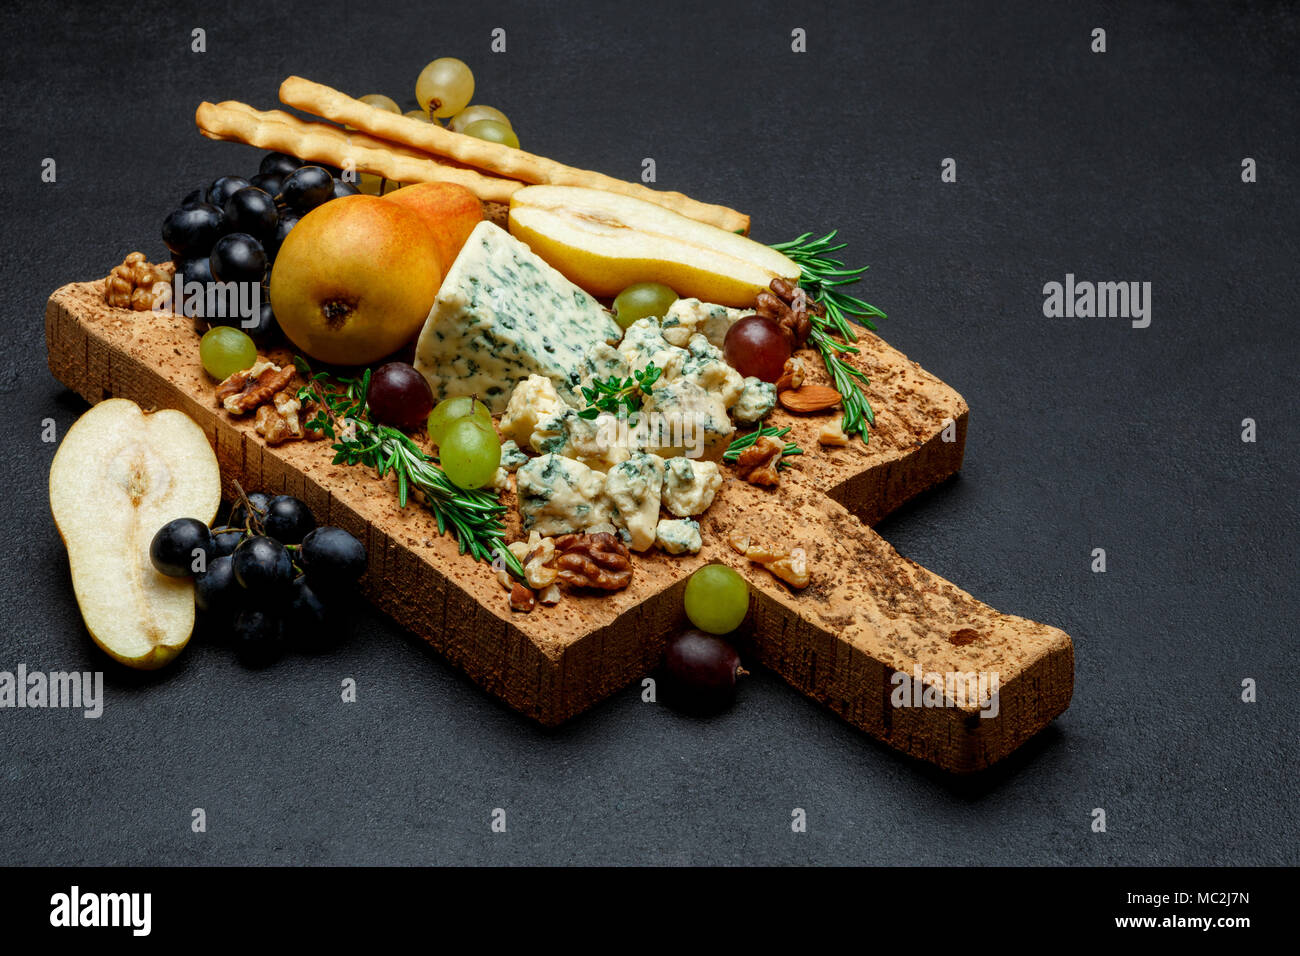 pears and cheese on wooden cutting board - Stock Image